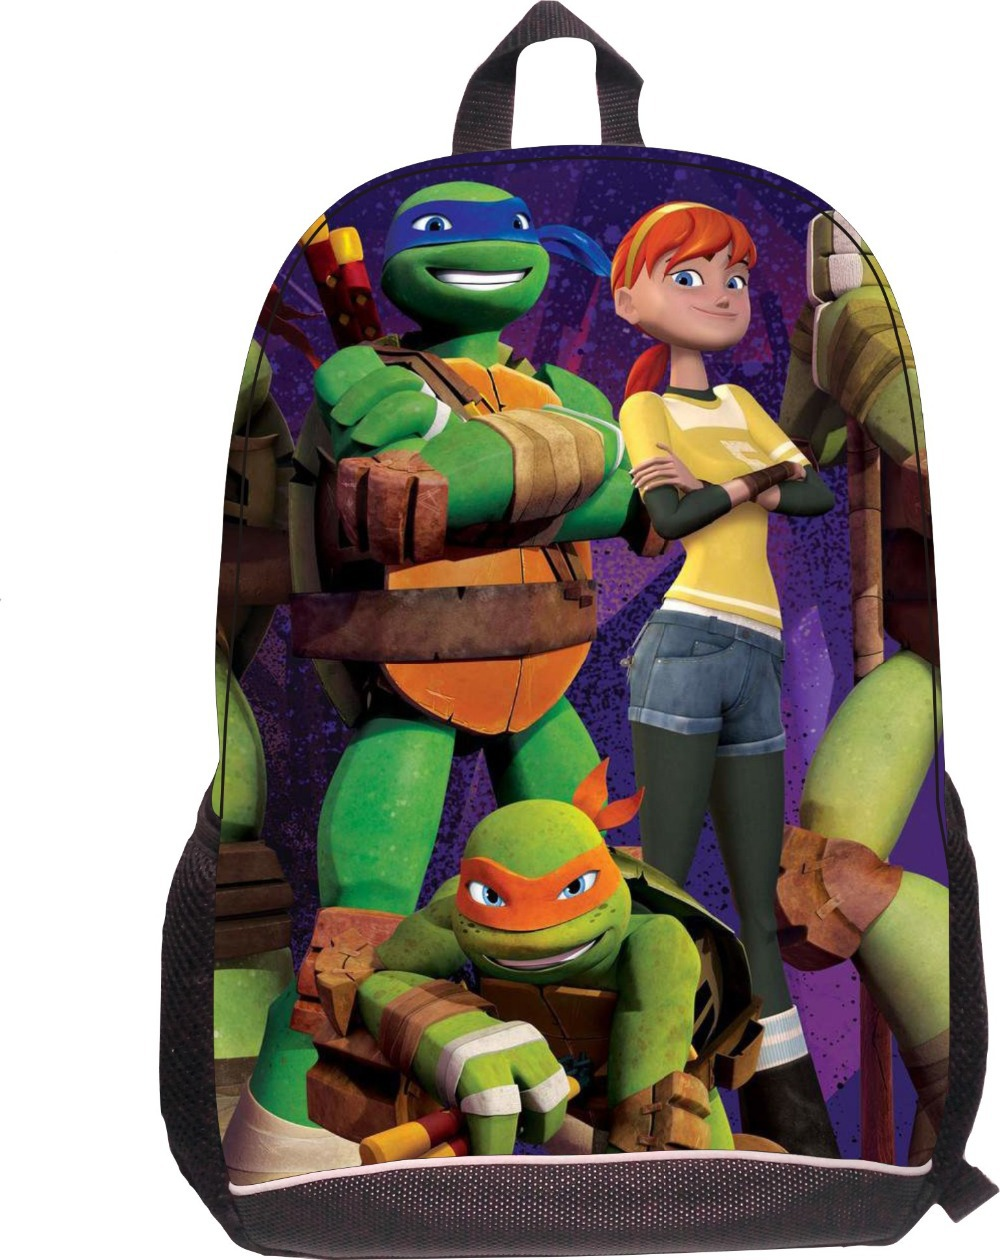 Popular Tmnt Bag-Buy Cheap Tmnt Bag lots from China Tmnt Bag ...